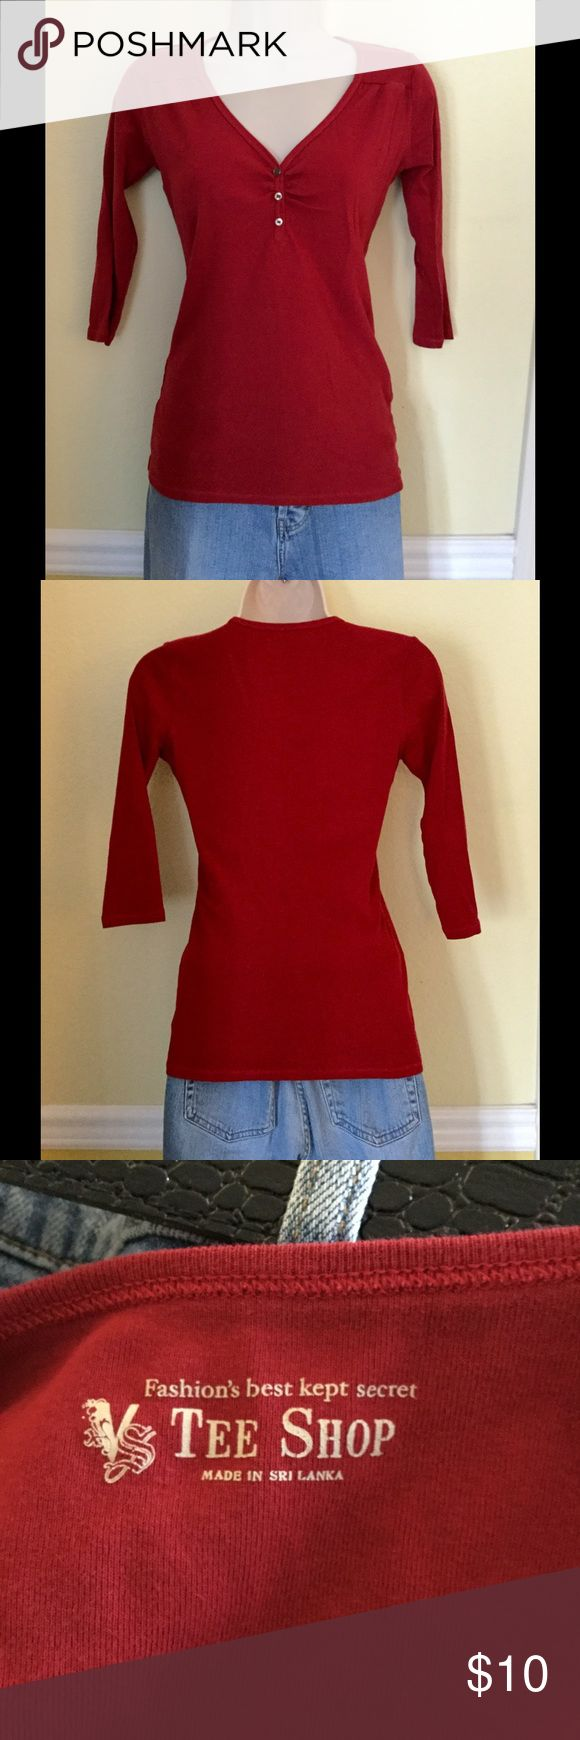 Beautiful red Henley top with 3/4 sleeves, S Victoria's Secret beautiful red, 3-button Henley top with 3/4 length sleeves, size small. EUC. Victoria's Secret Tops Tees - Long Sleeve